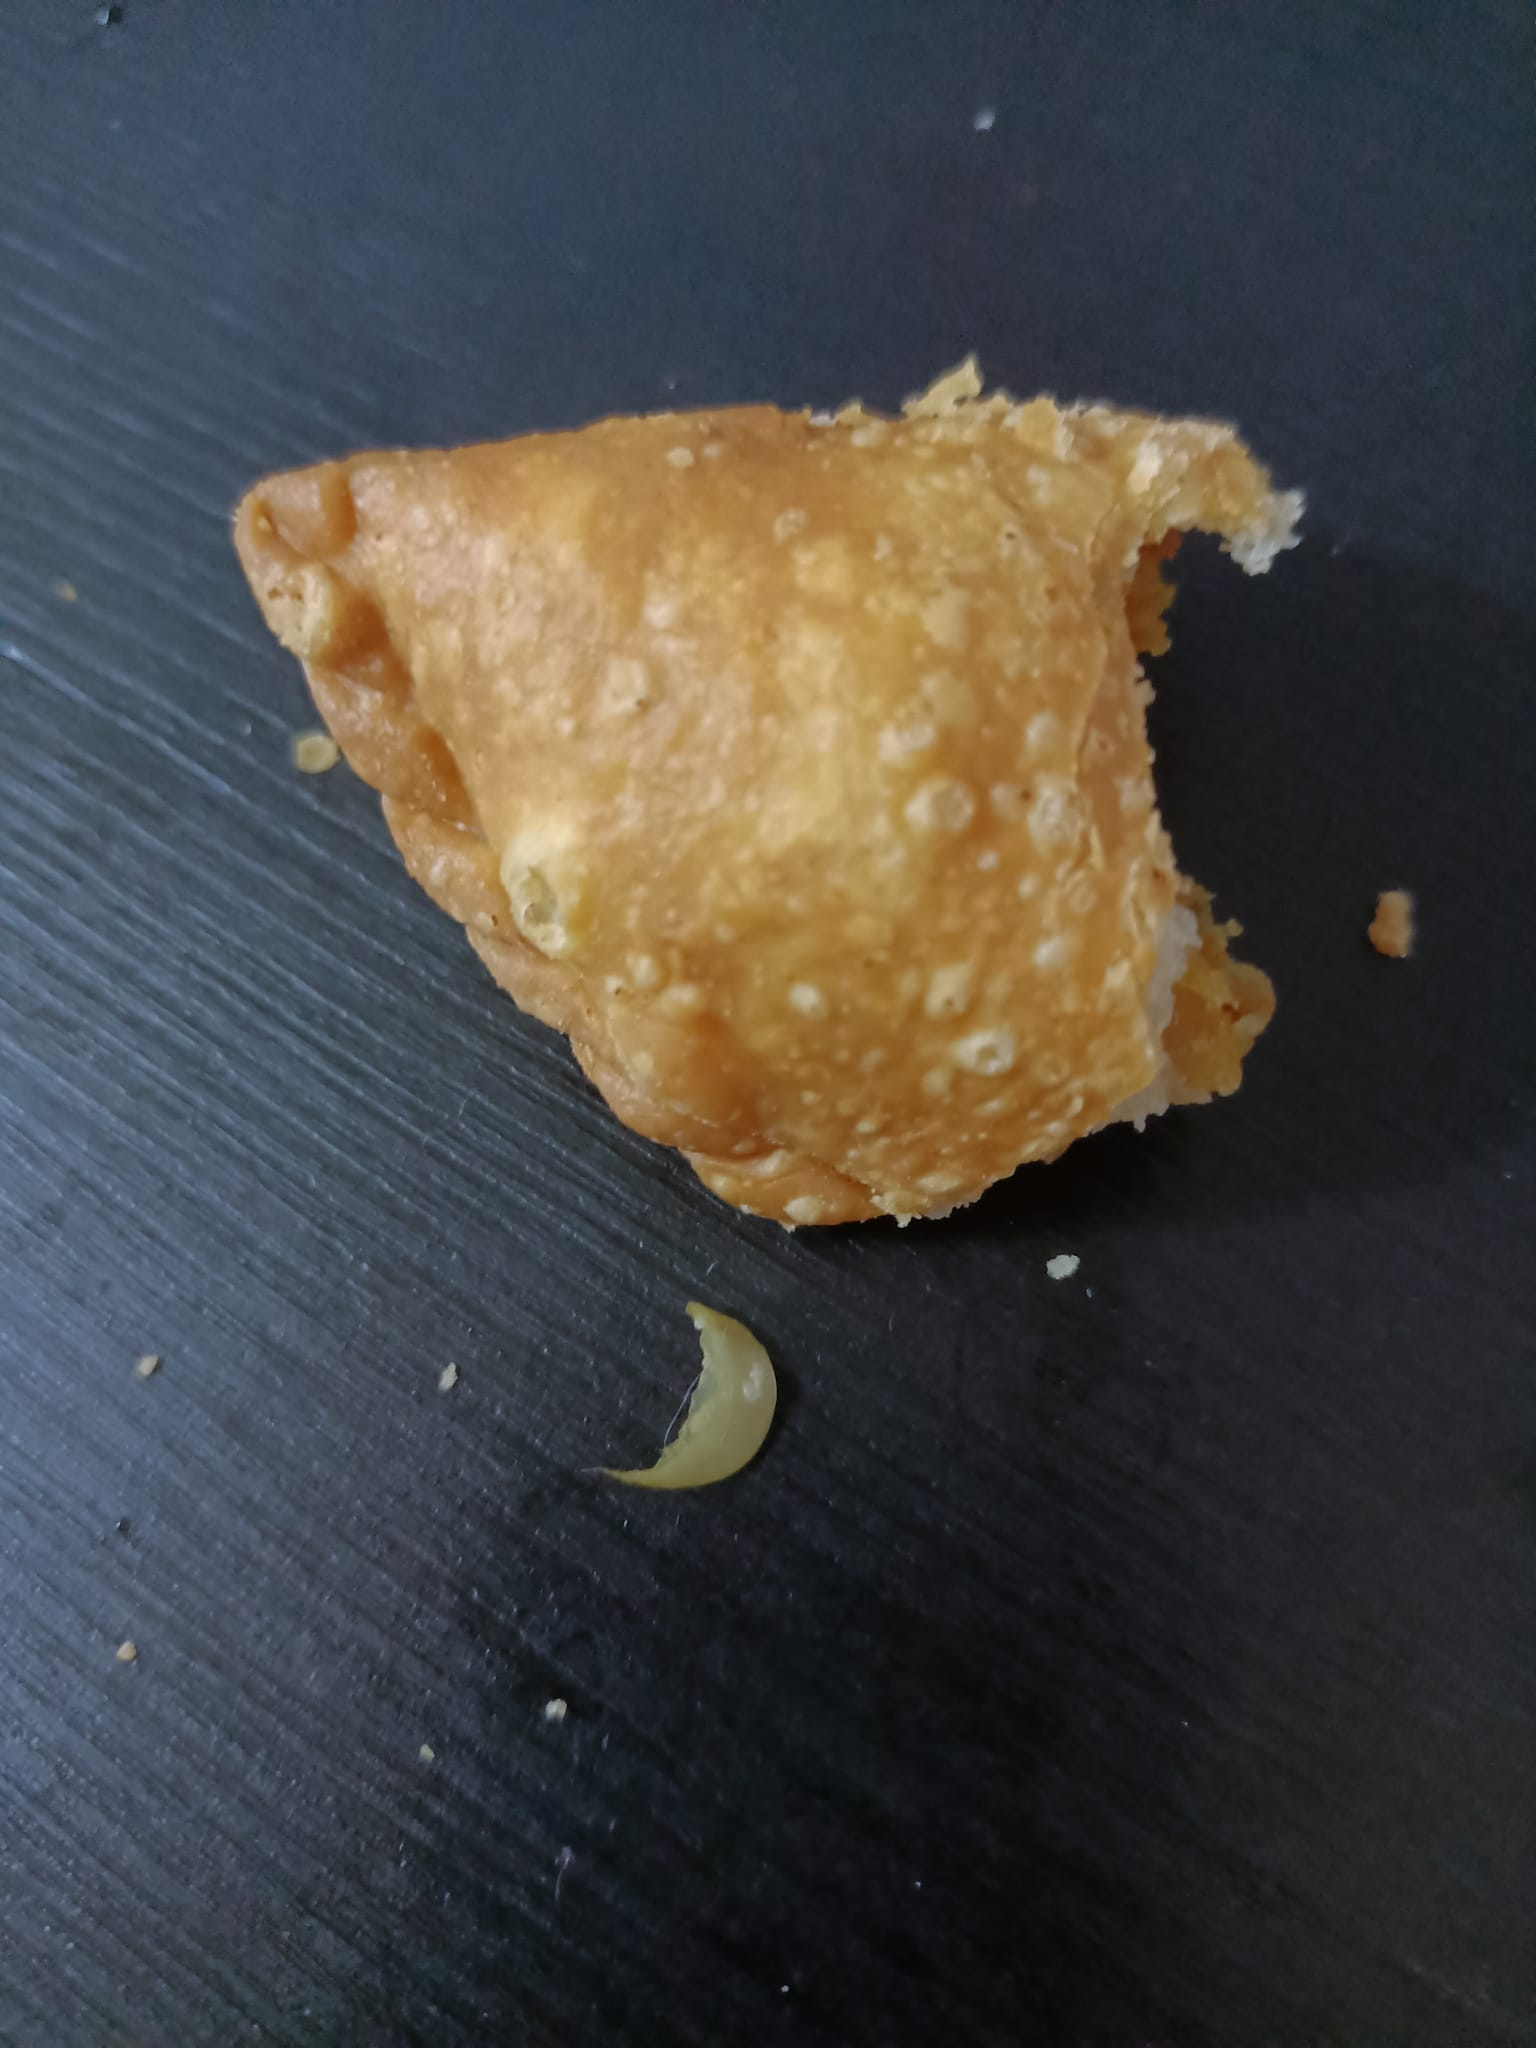 Extra ingredient found in woman's curry puff.